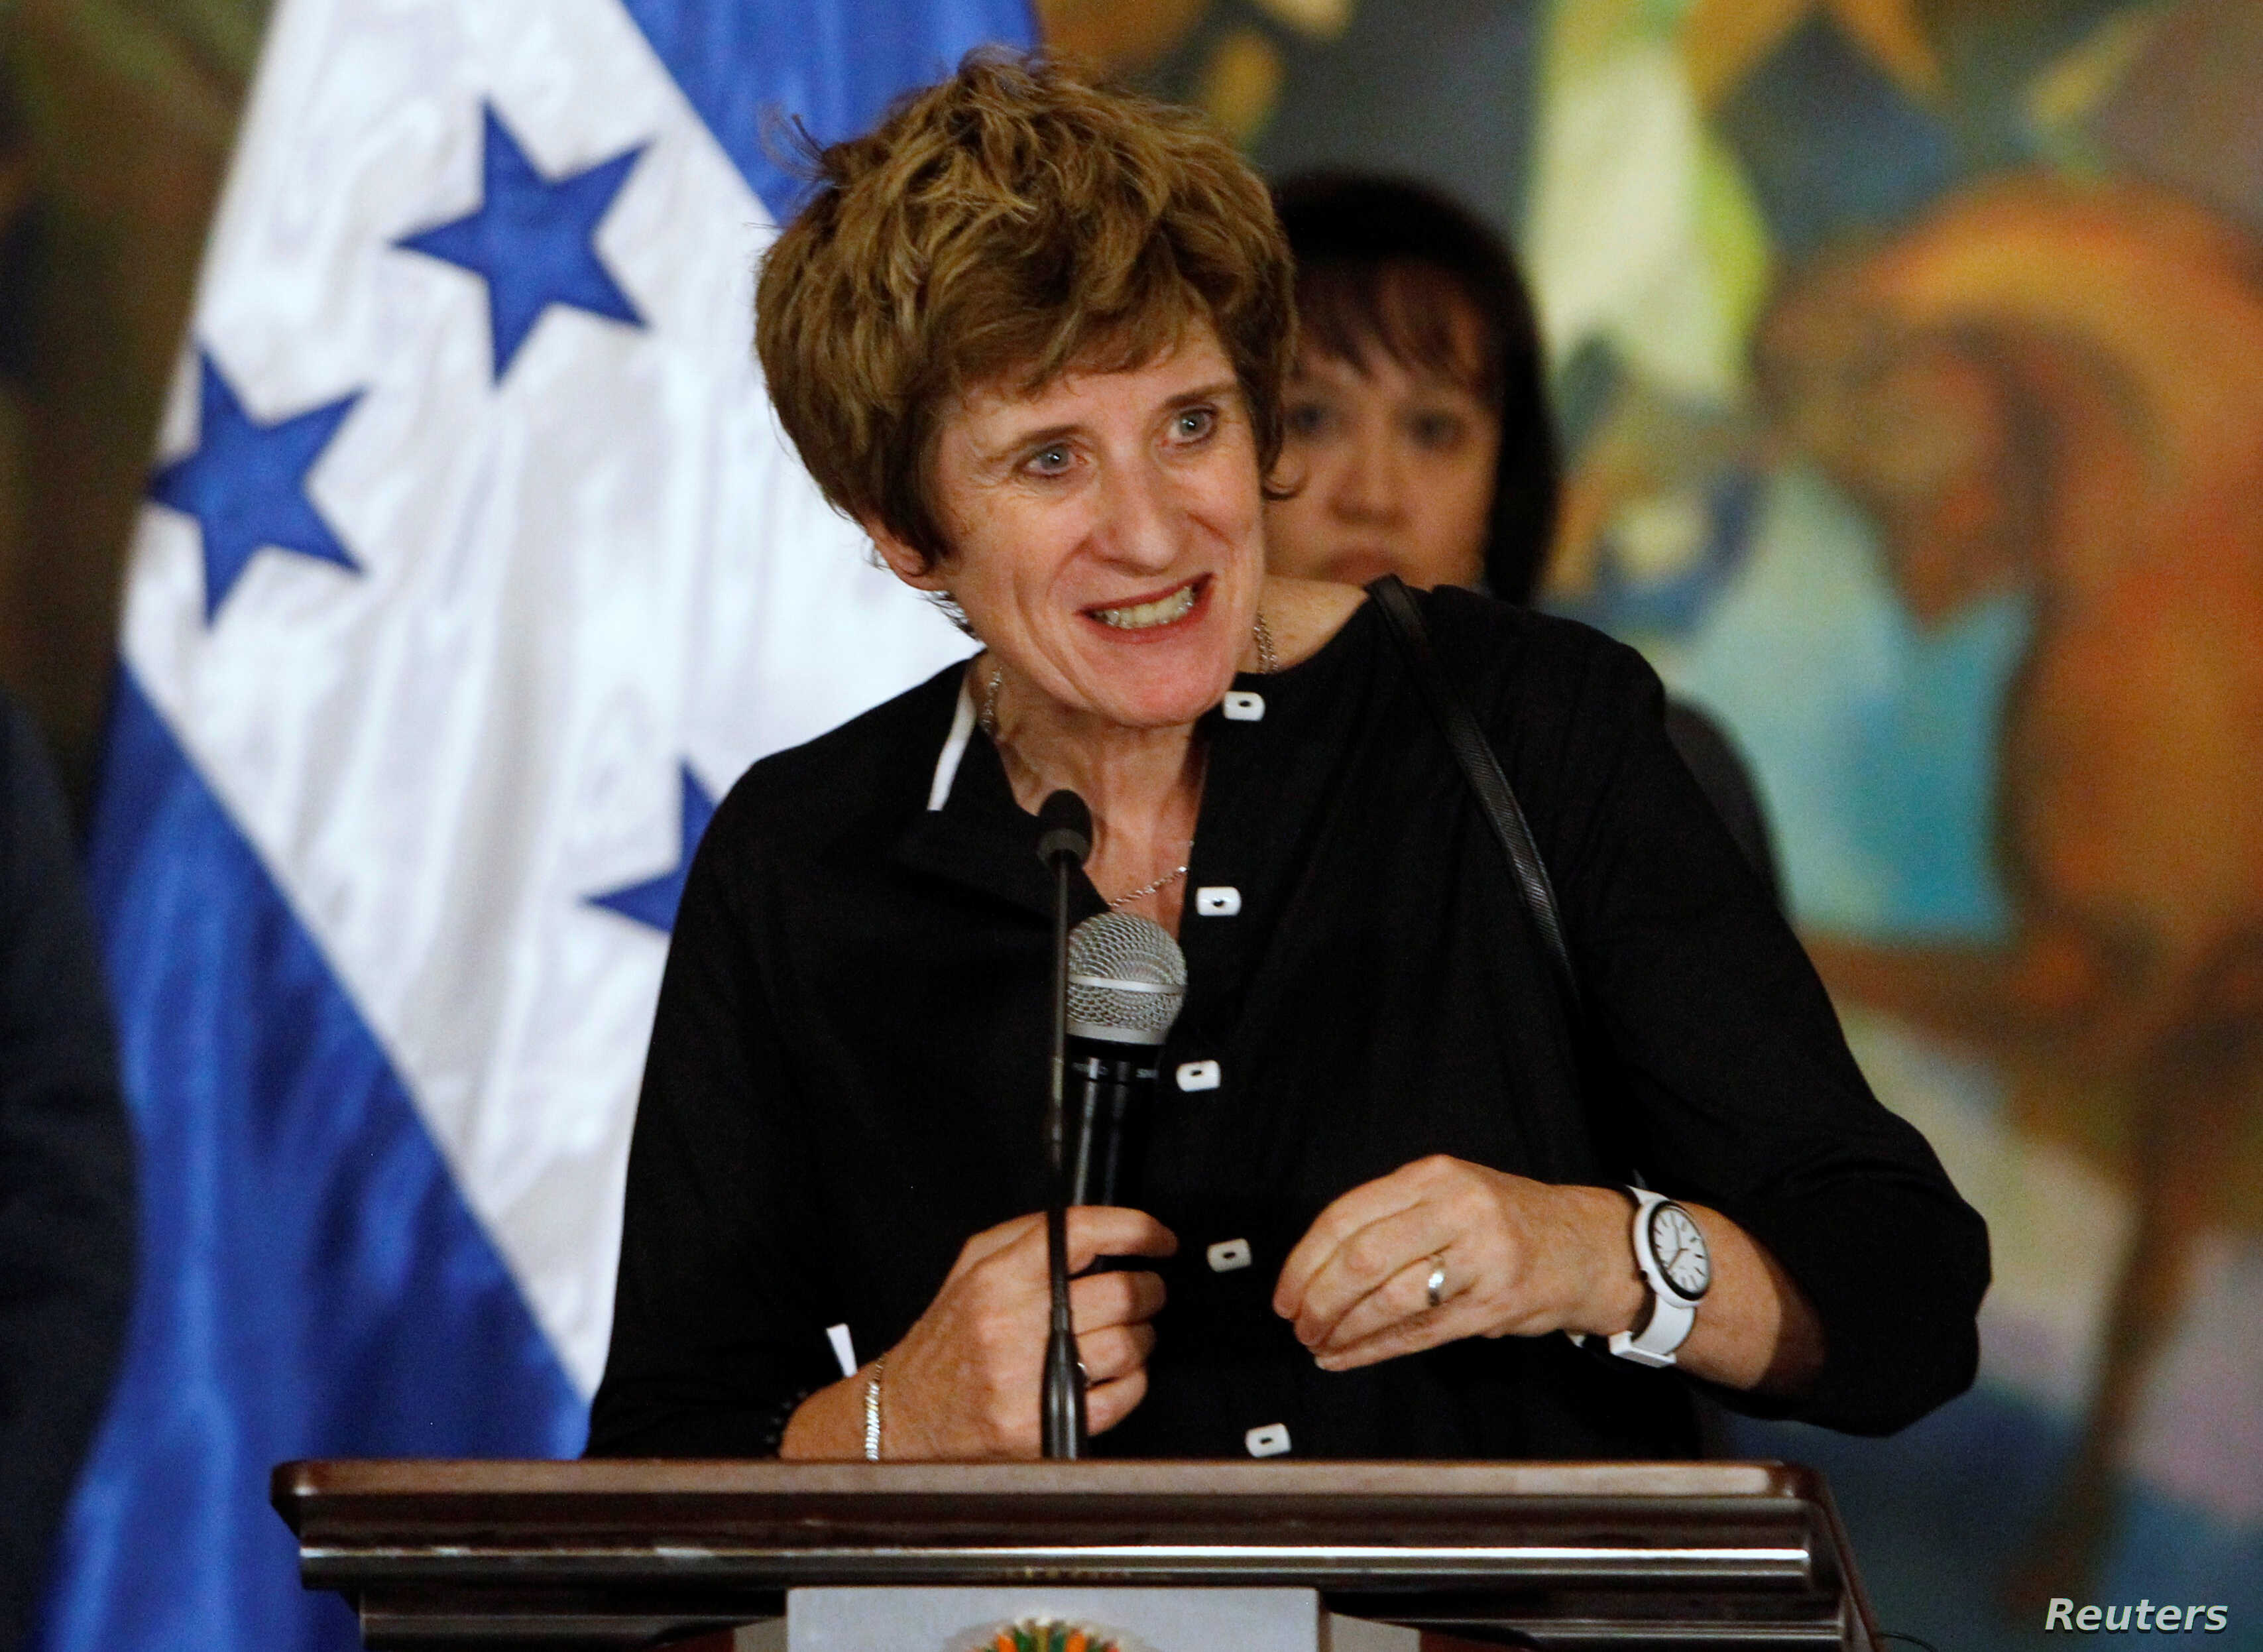 FILE - United Nation Deputy High Commissioner for Human Rights Kate Gilmore during a news conference at the presidential palace in Tegucigalpa, Honduras, Nov. 23, 2016.